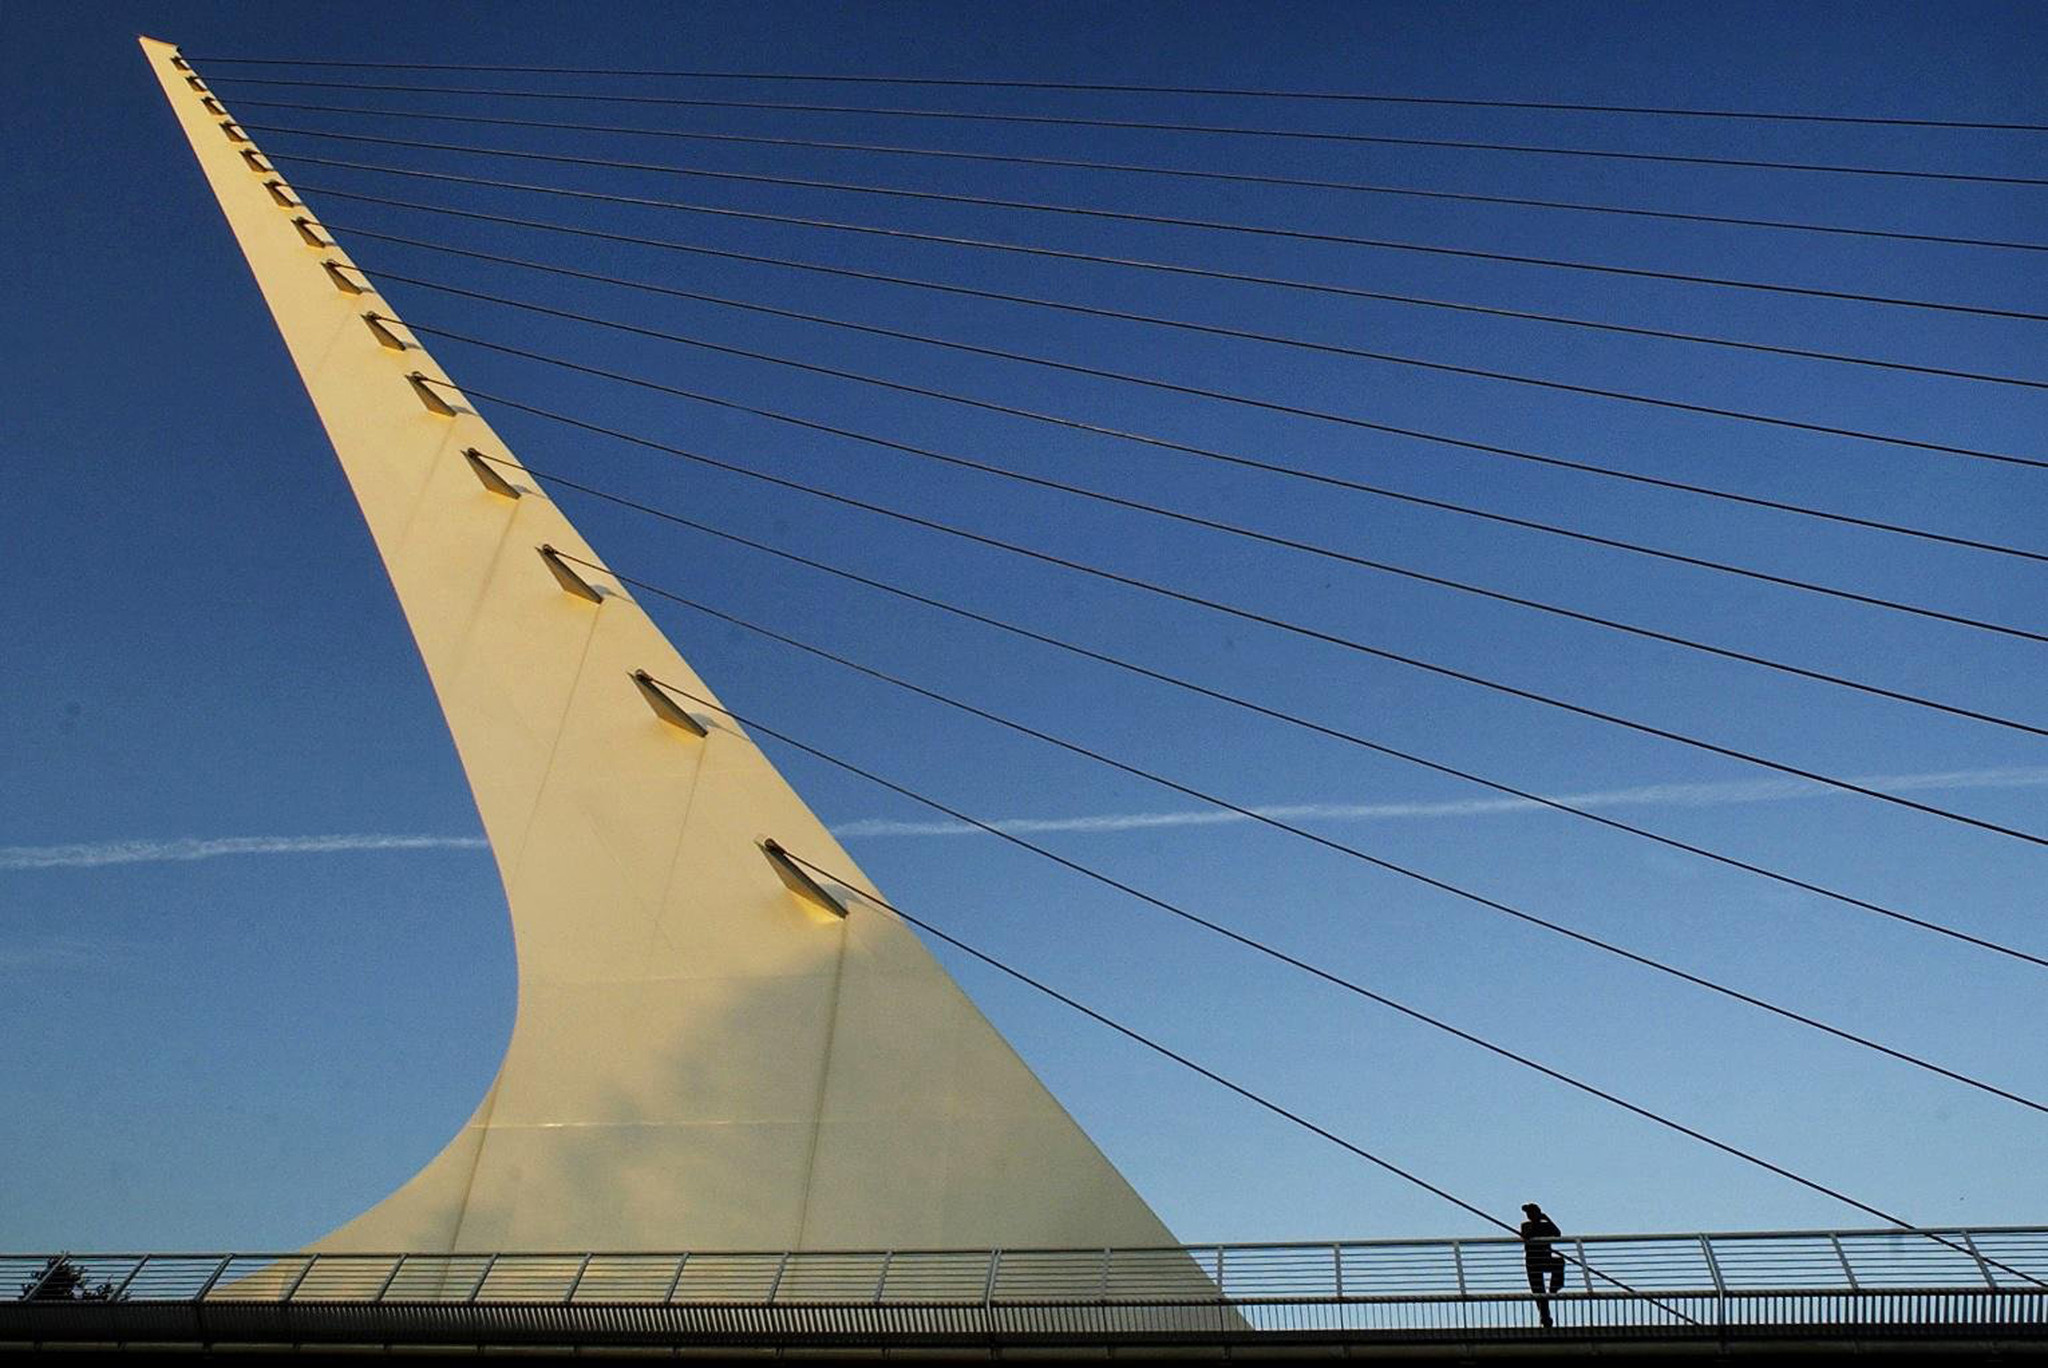 Walk or bike the Sundial Bridge after lunch.